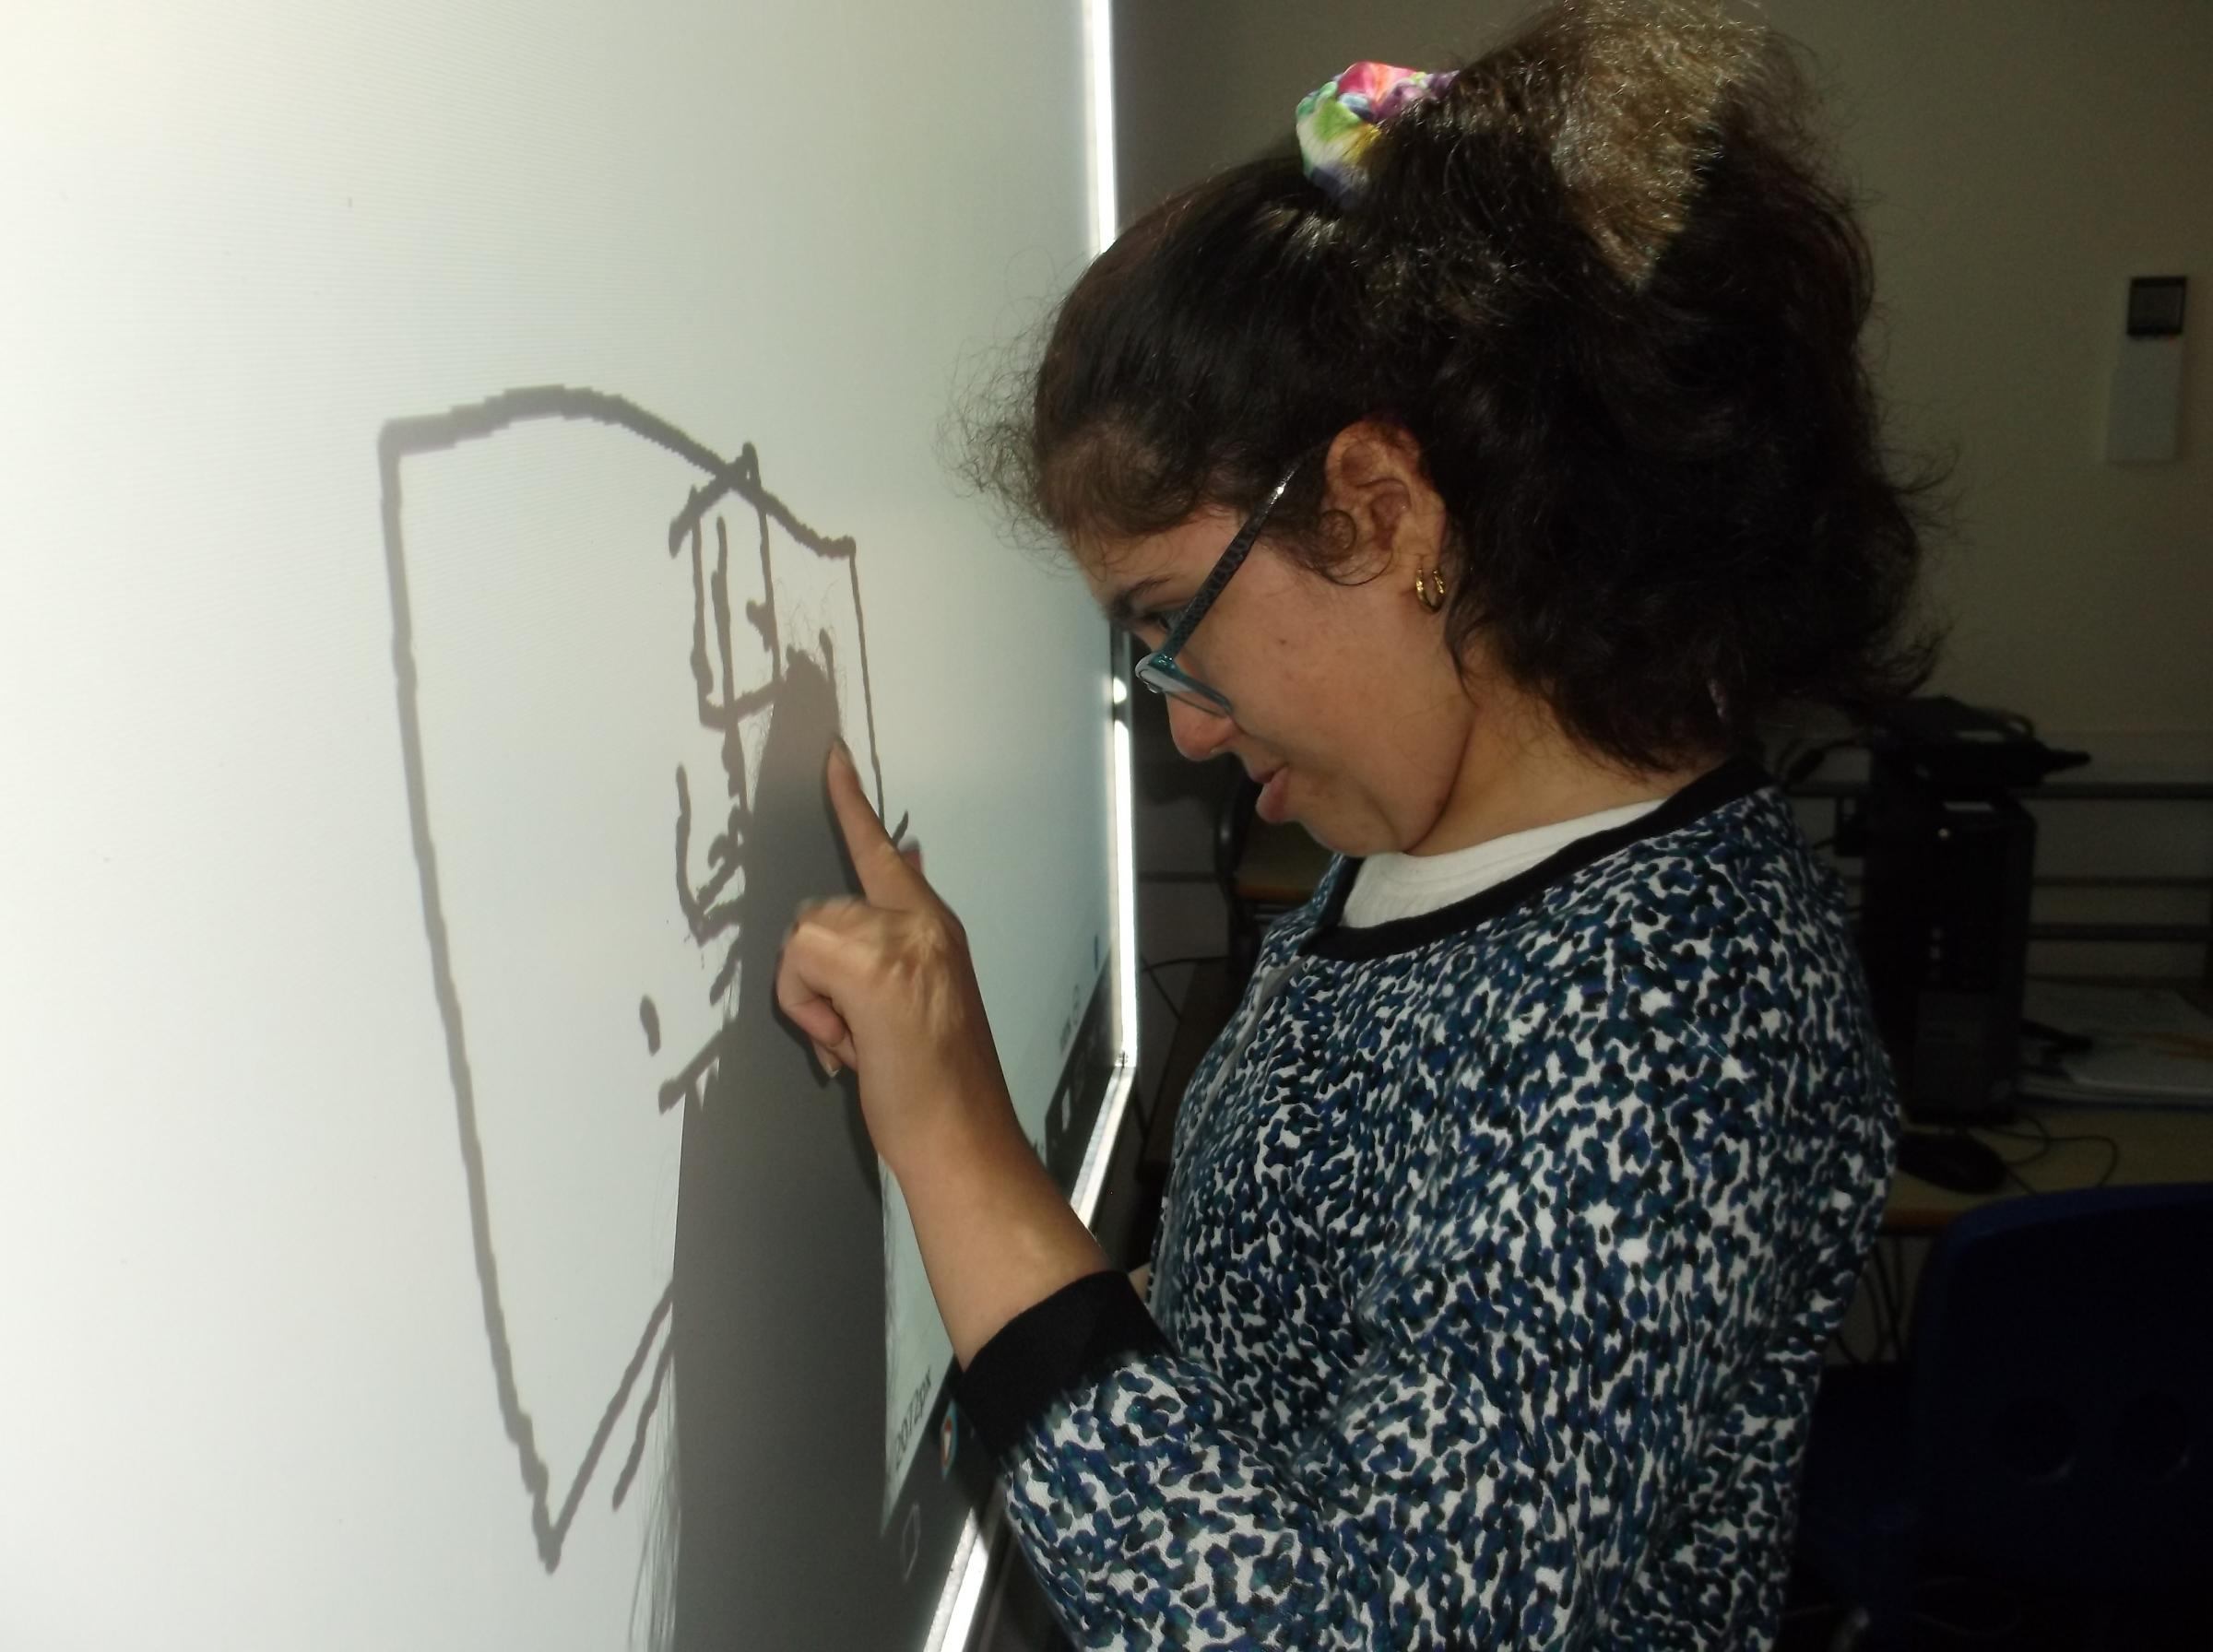 Manhoor, one of the artists, preparing her work for the exhibition